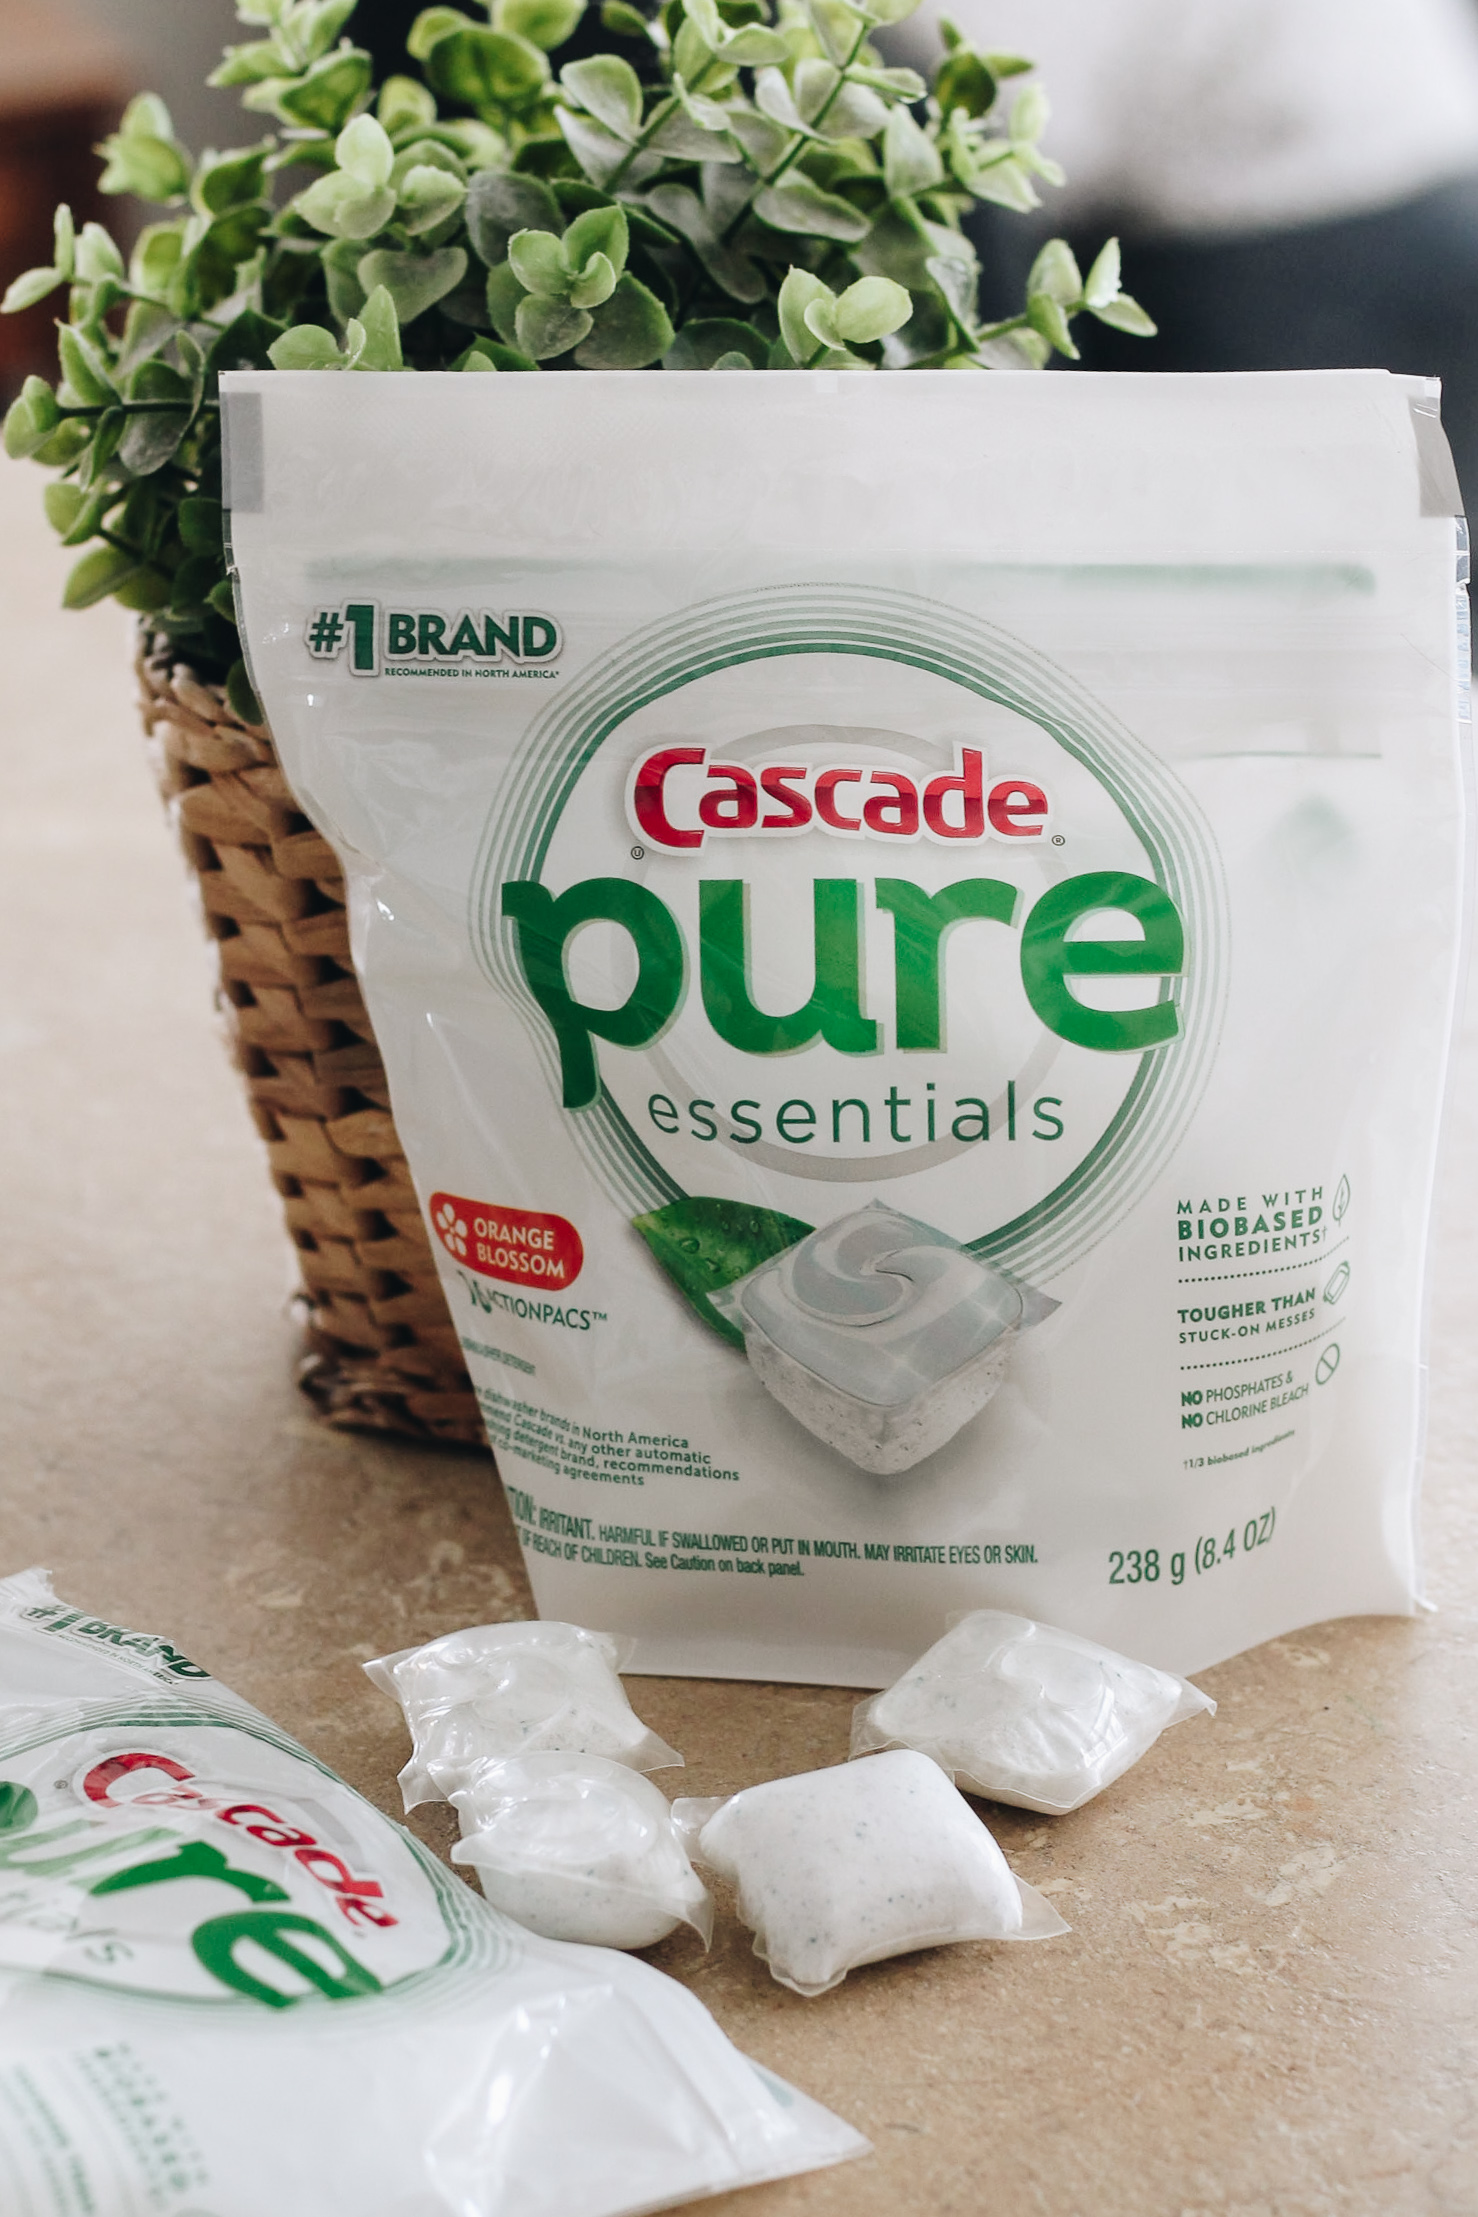 Cascade Pure Essentials